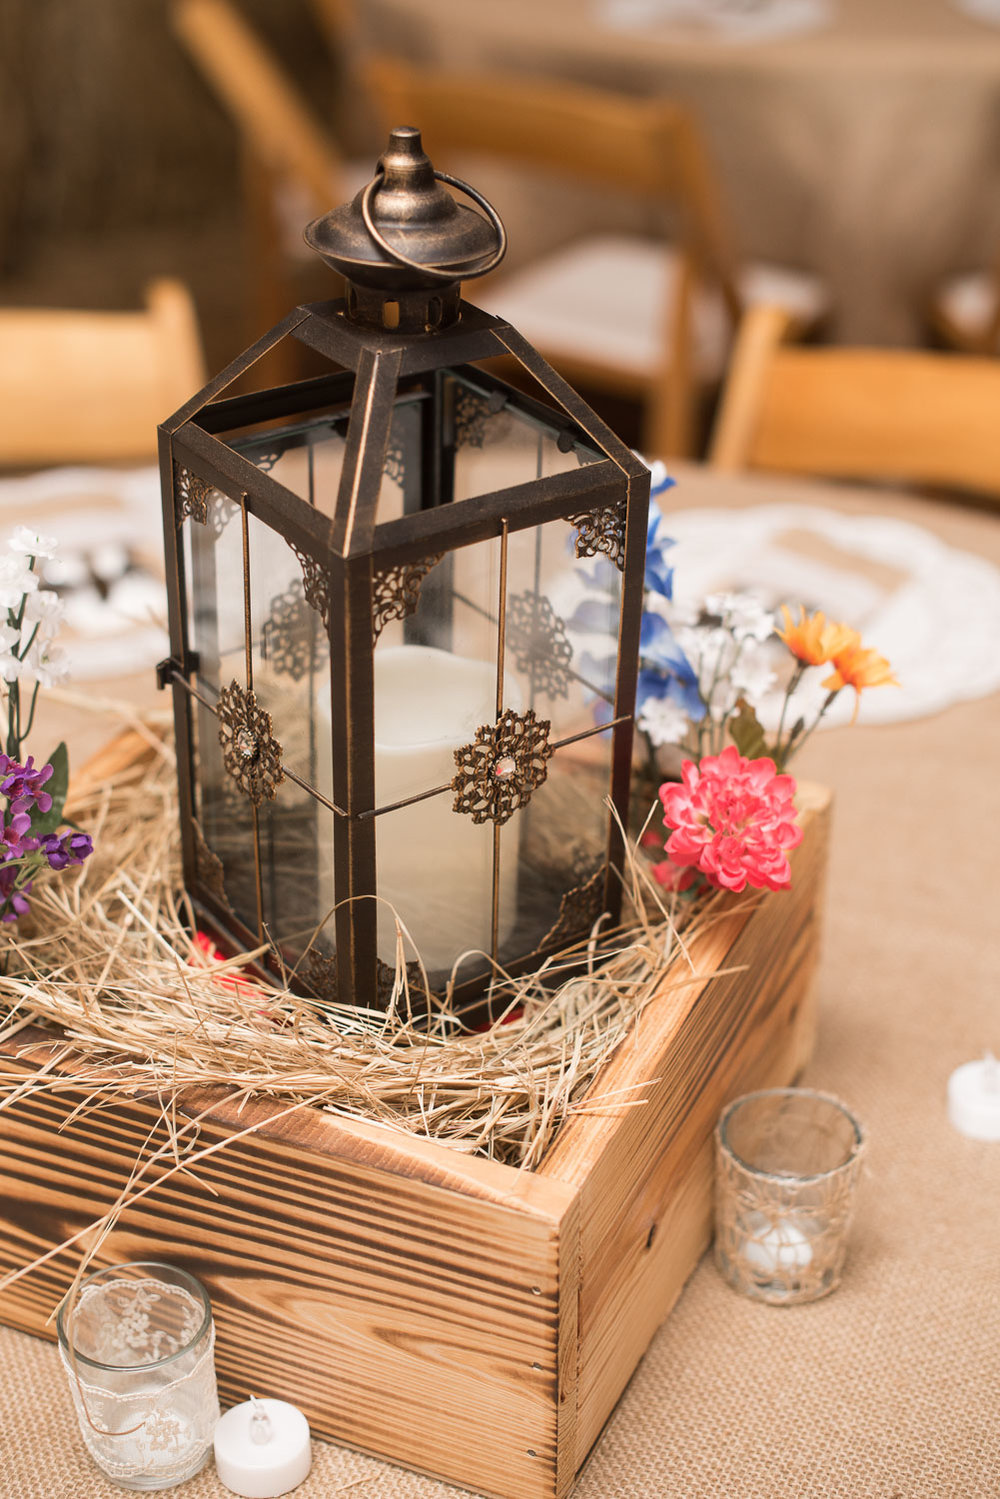 61 reception centerpiece in barn wedding.jpg